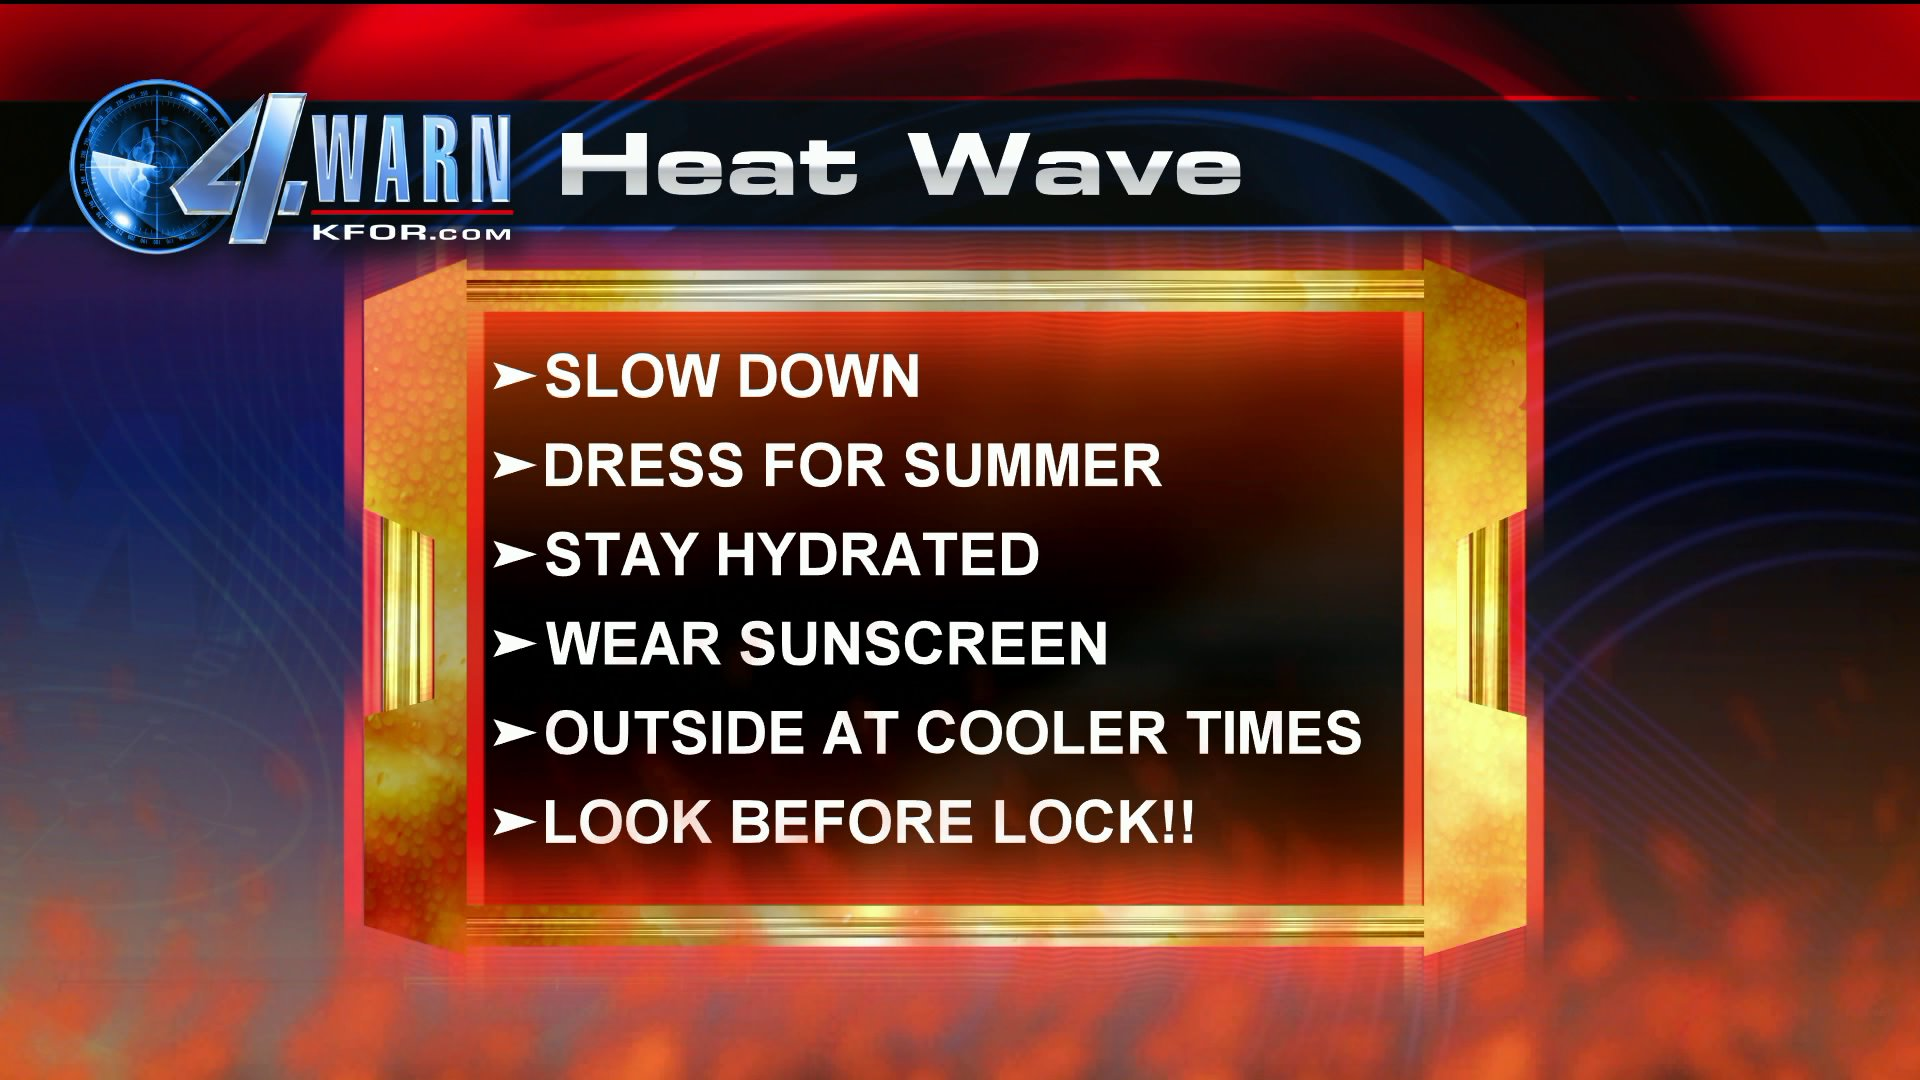 Stay safe during the high temps